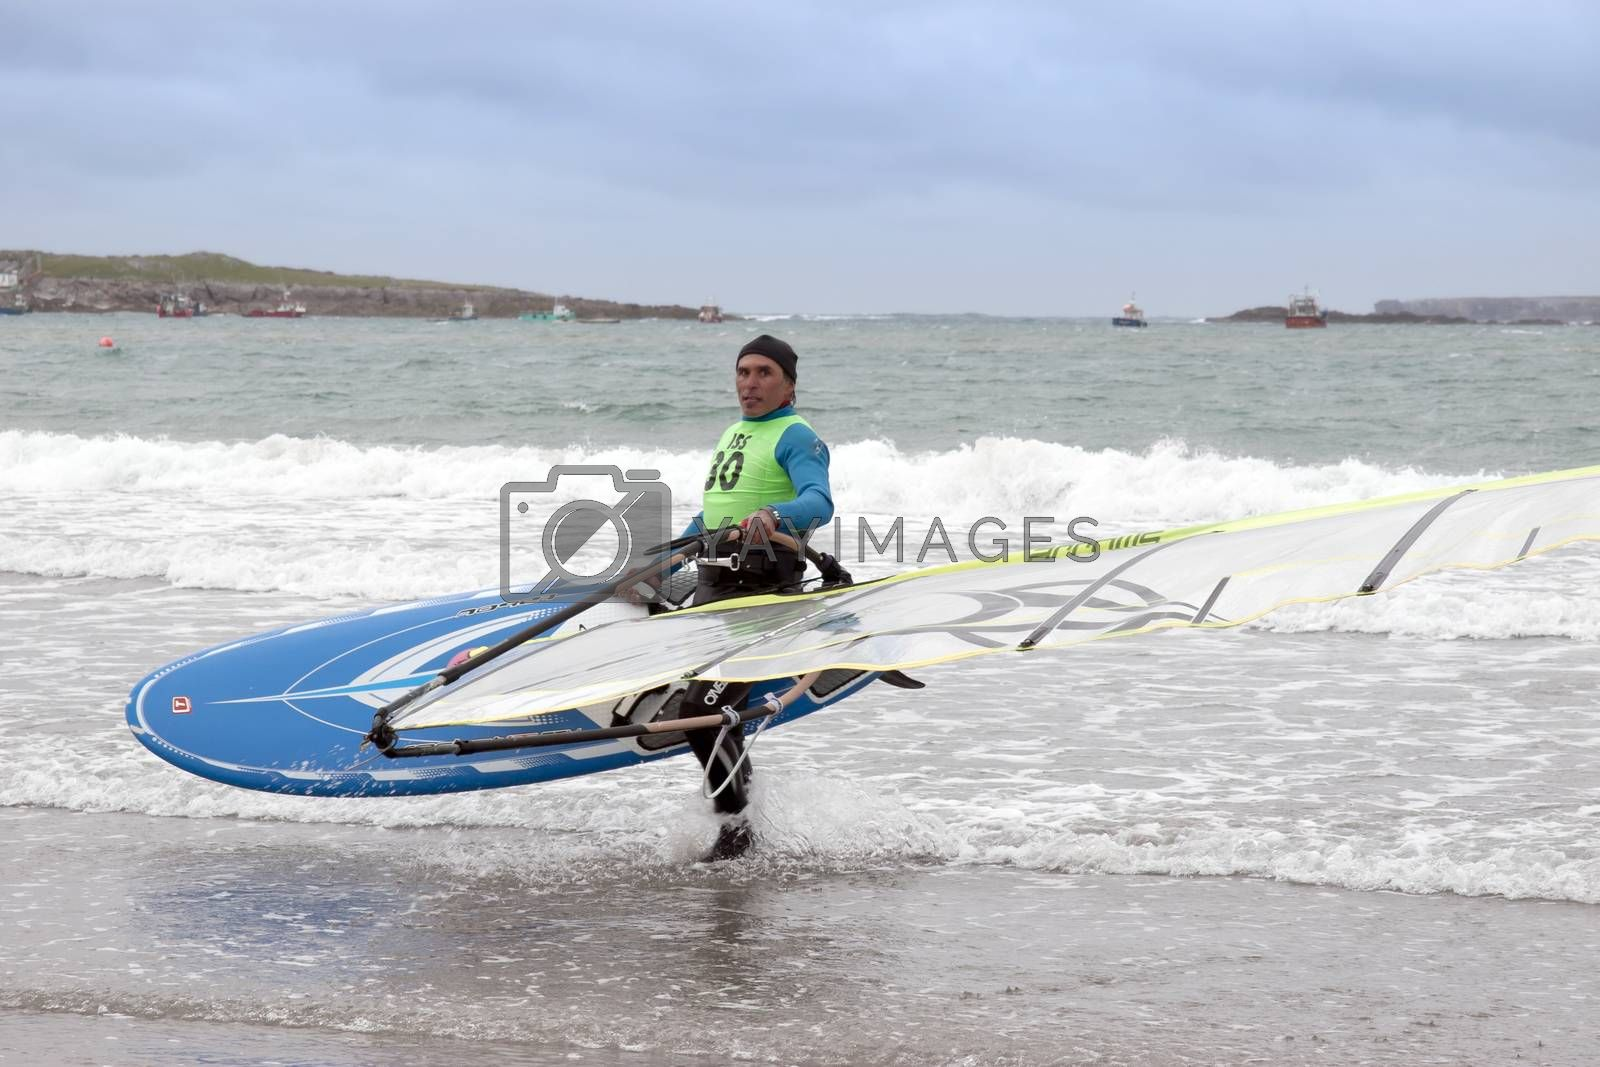 windsurfers getting ready to race and surf on the beach in the maharees county kerry ireland